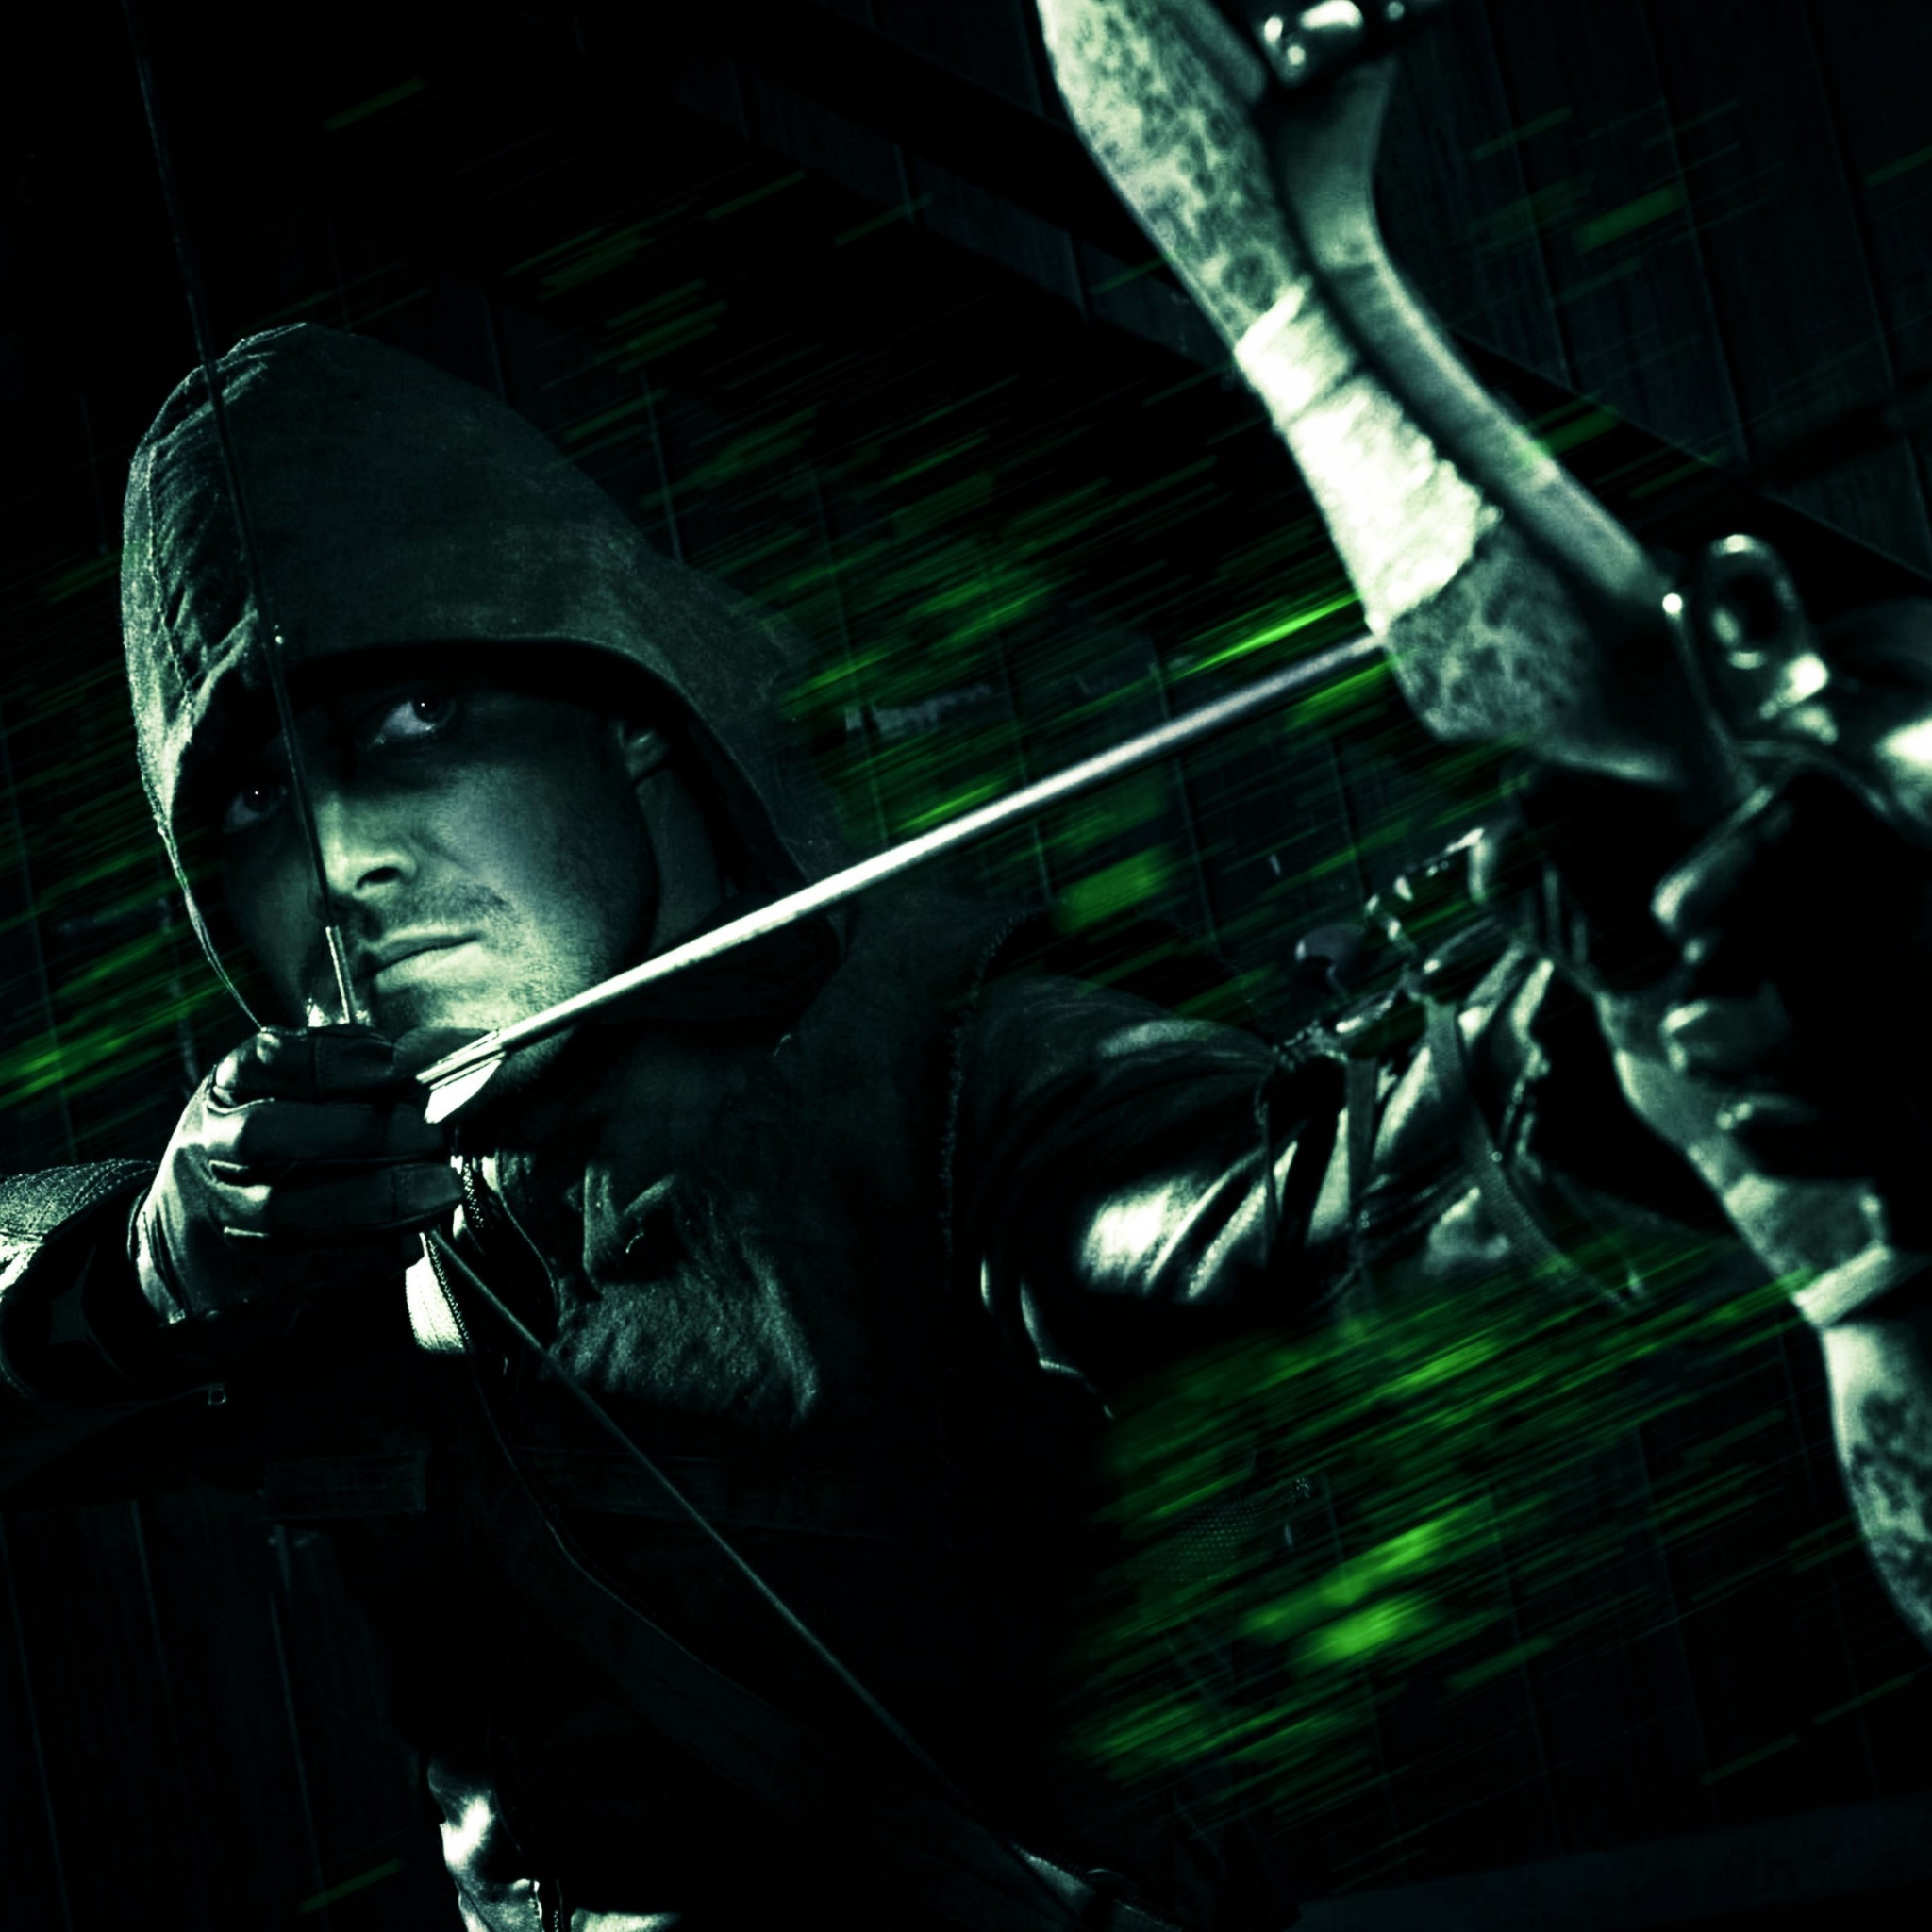 Green Arrow wallpaper 2048x2048